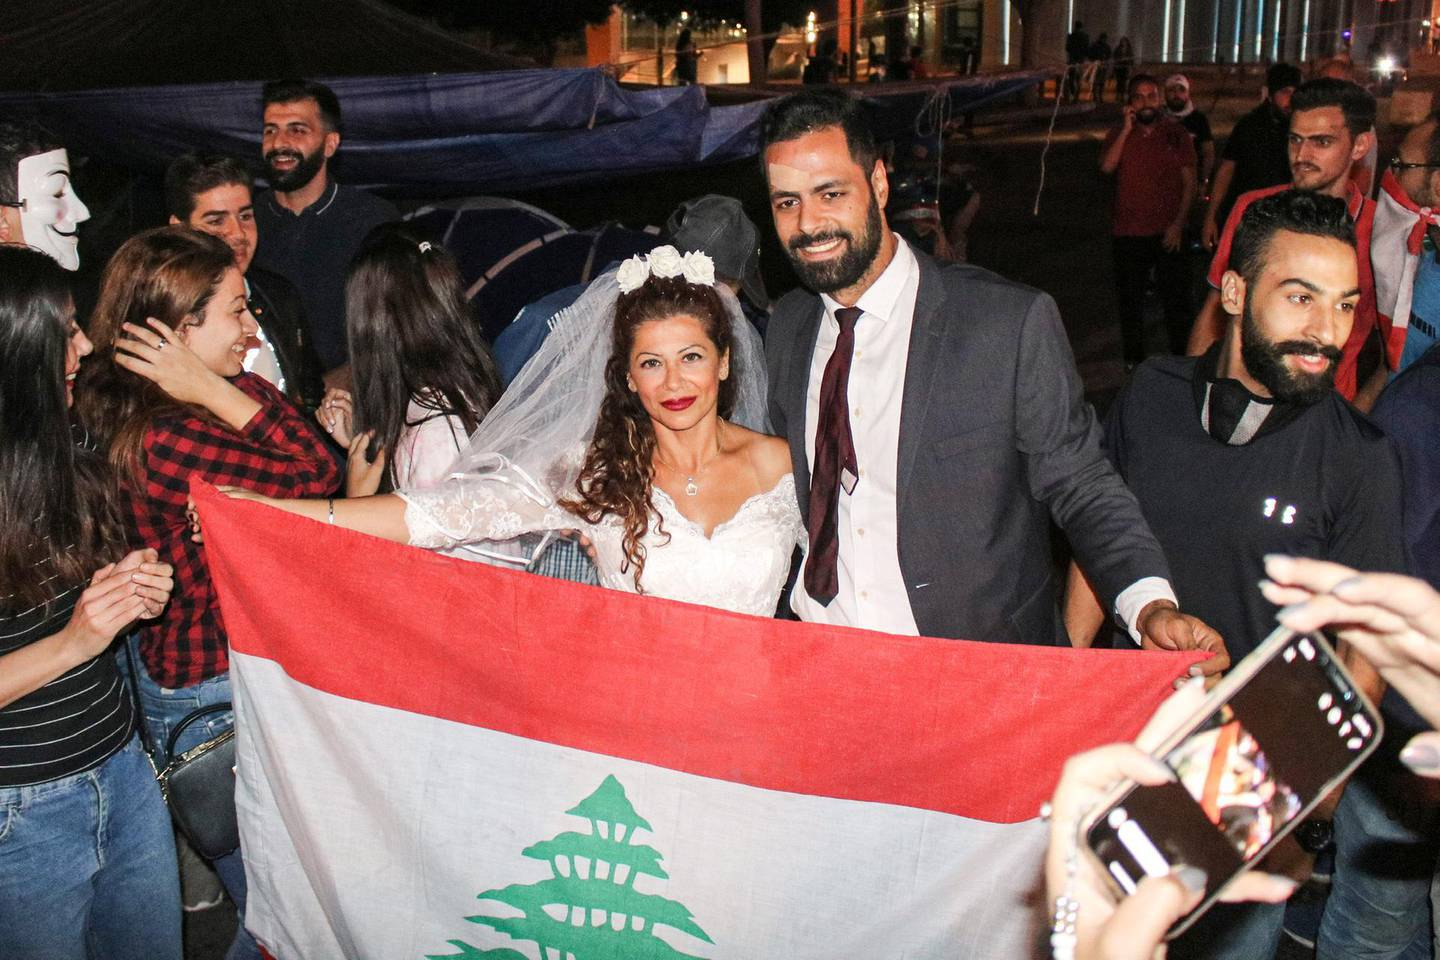 Malak Alaywe Herz, a woman who famously kicked the bodyguard of Education Minister Akram Chehayeb and became an icon in the current anti-government protests, poses for a picture in her wedding dress with a national flag alongside her newly-wed husband Mohammad after their marriage at Riad al-Solh square in the centre of the capital Beirut on October 23, 2019.  / AFP / Mohammad YASIN